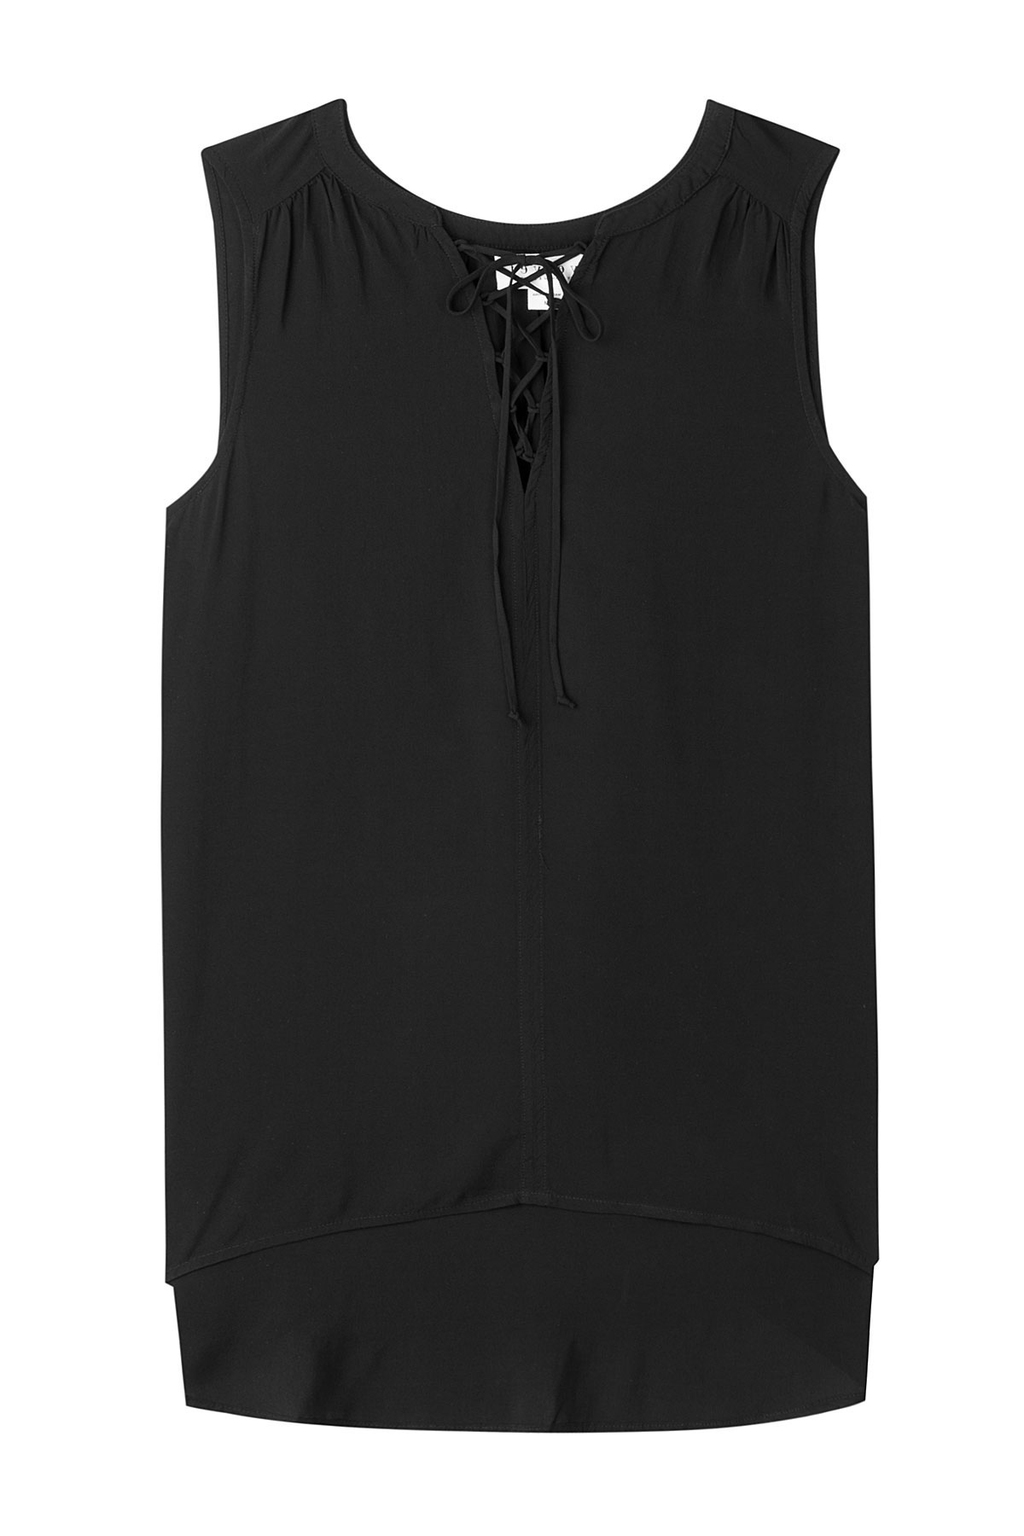 Leonna Top With Lace Up Front Black - neckline: v-neck; pattern: plain; sleeve style: sleeveless; predominant colour: black; occasions: casual; length: standard; style: top; fibres: viscose/rayon - 100%; fit: body skimming; sleeve length: sleeveless; pattern type: fabric; texture group: jersey - stretchy/drapey; season: s/s 2016